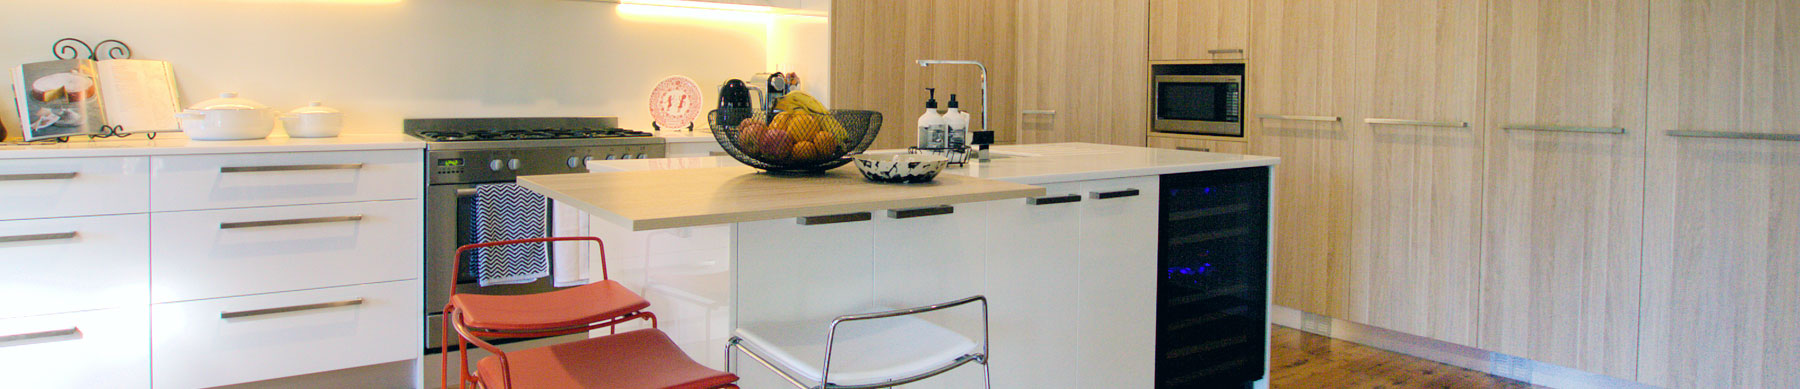 kitchen renovation company sydney